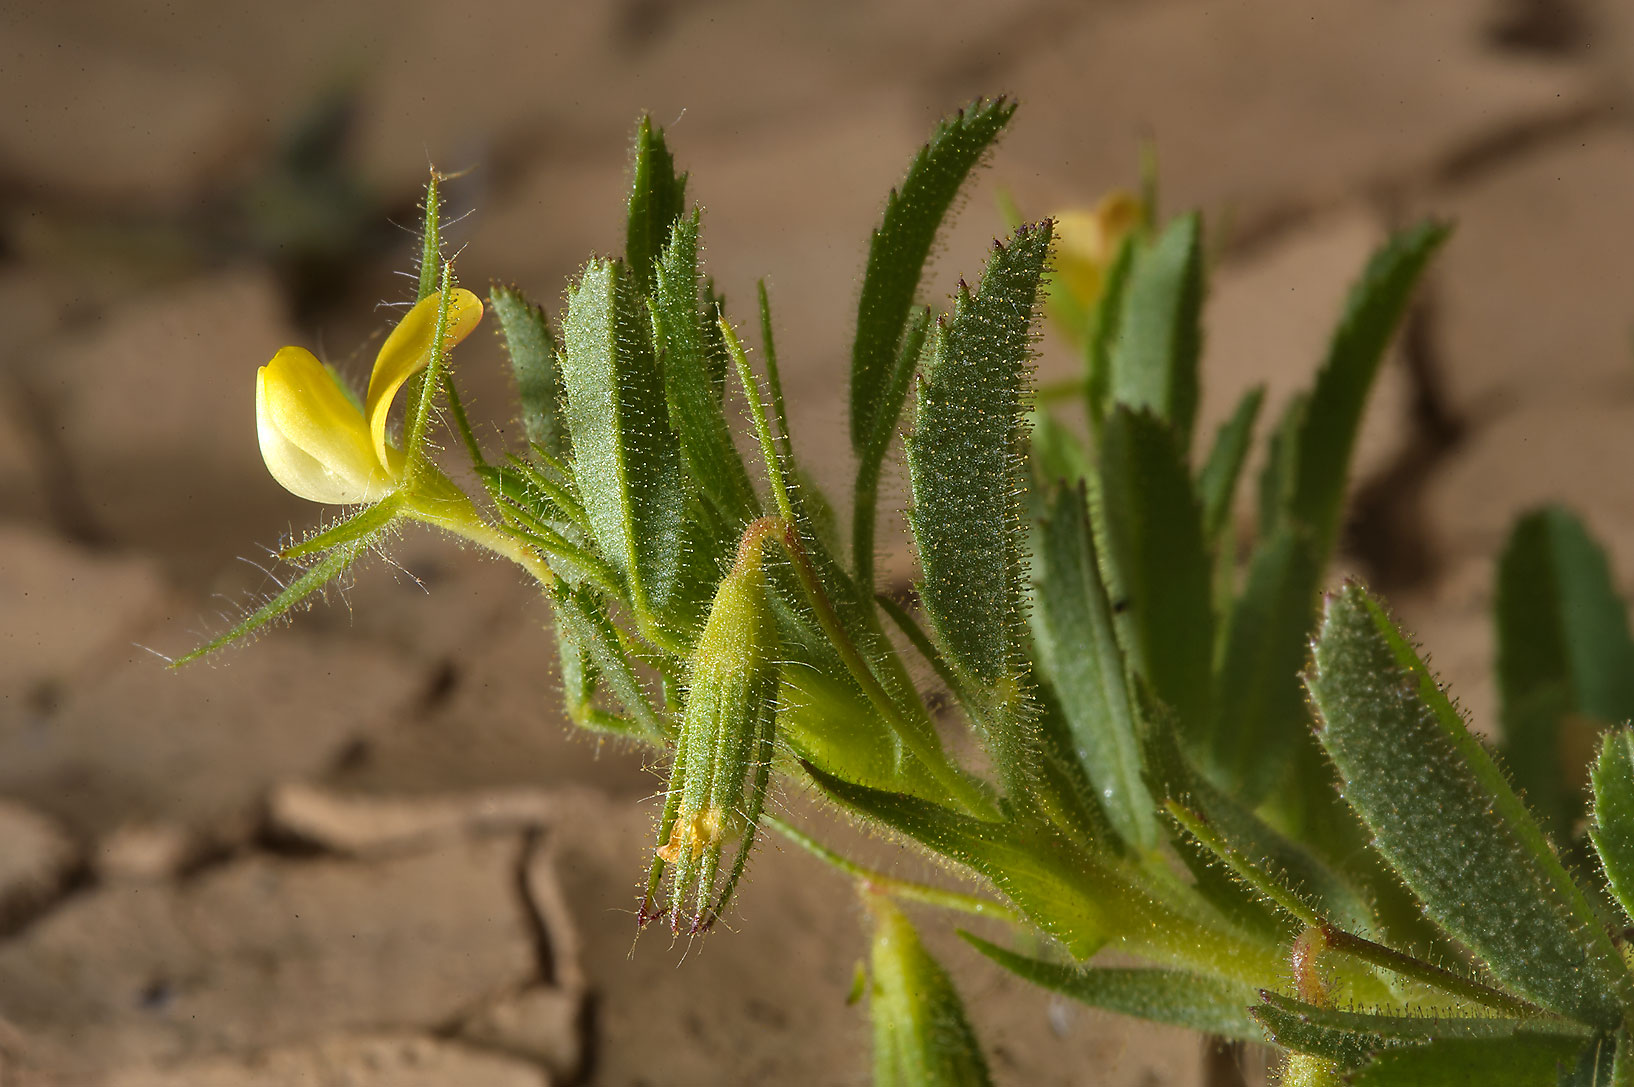 Flowers of Ononis sicula (Barak Sicily) in silty...near Ras Laffan. Northern Qatar